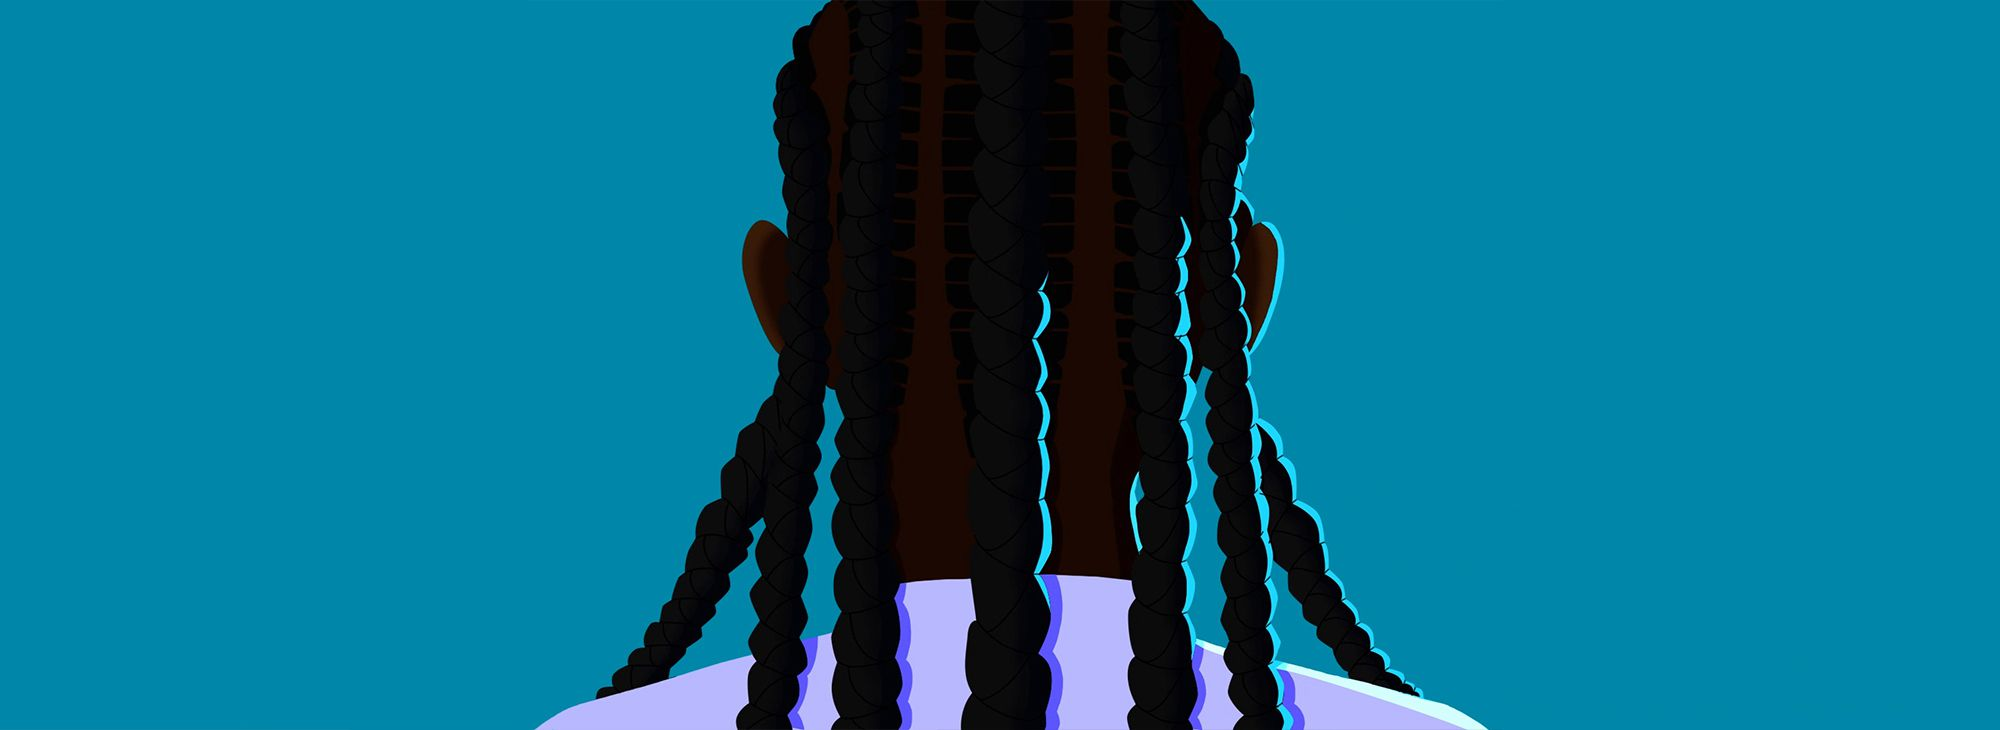 Illustration of person with cornrows